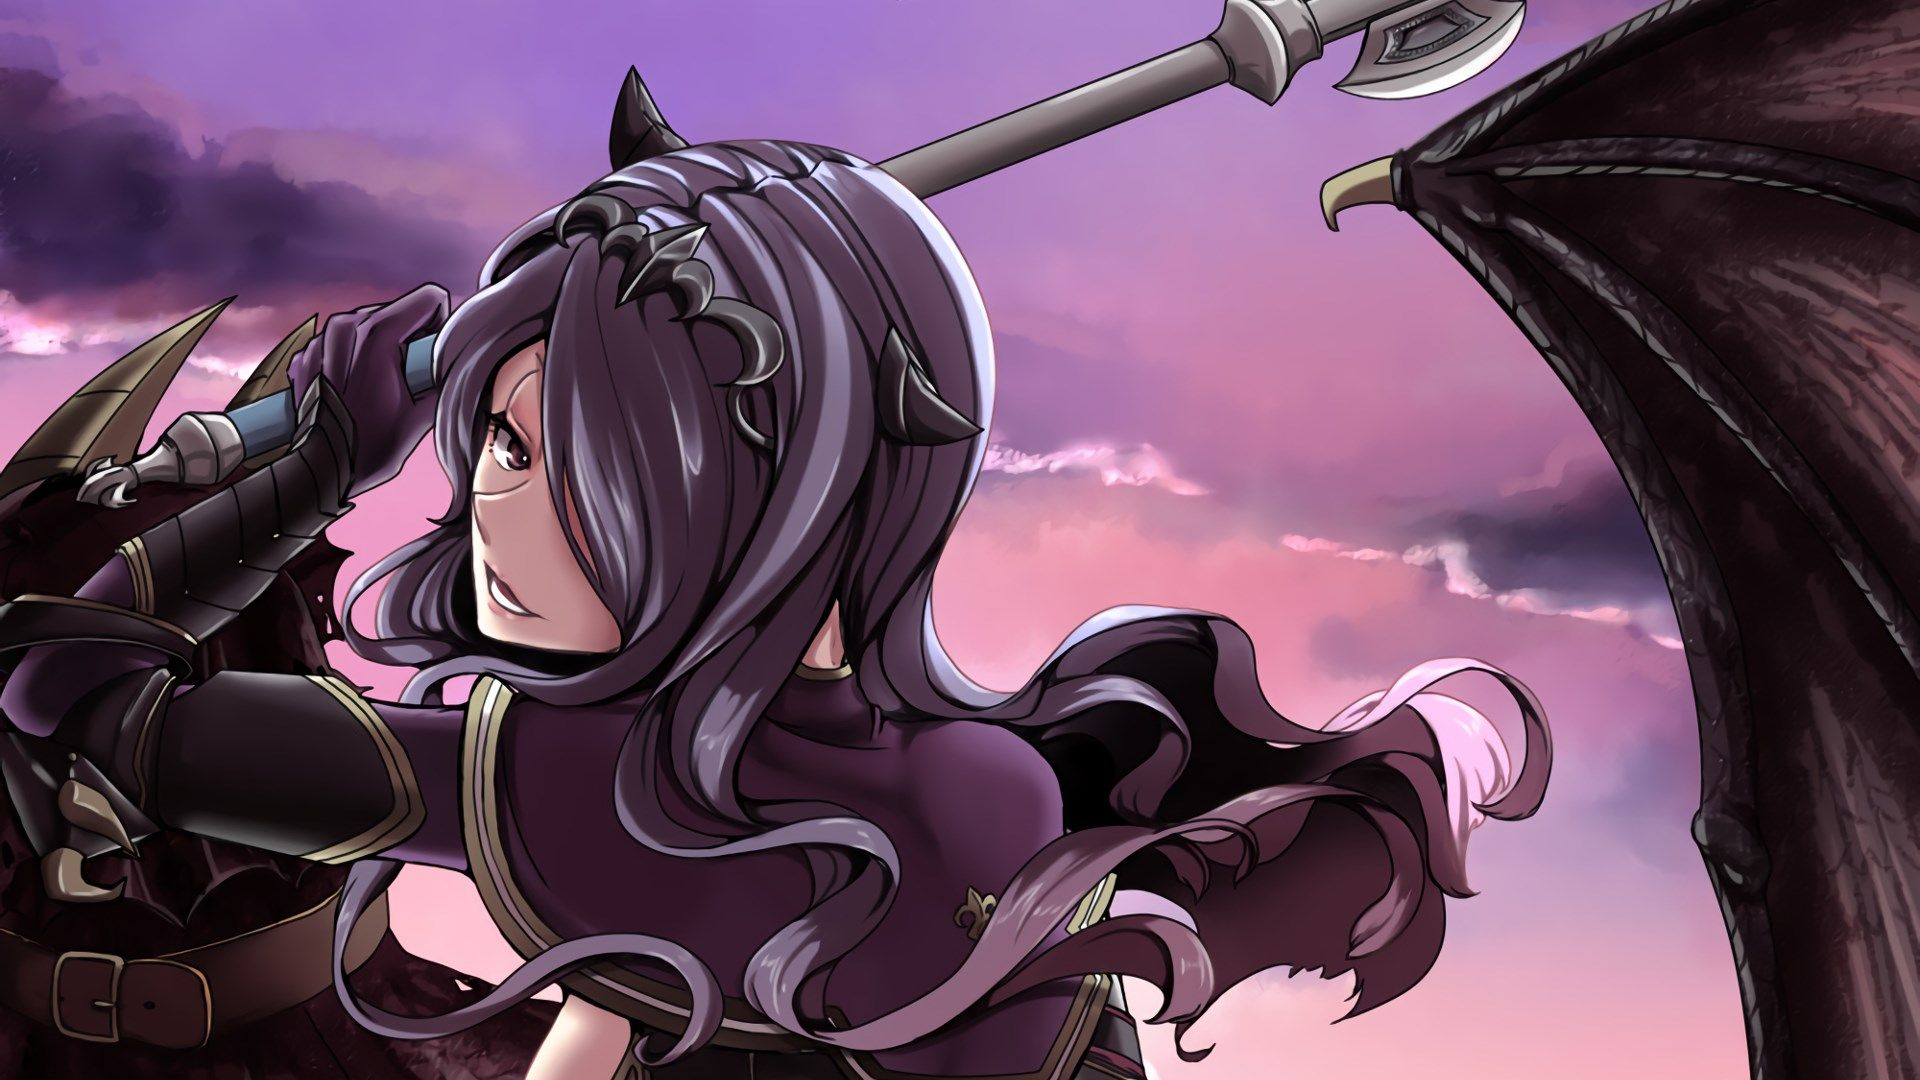 Fire Emblem Fates For Desktop Hd 1920x1080 Fire Emblem Wallpaper